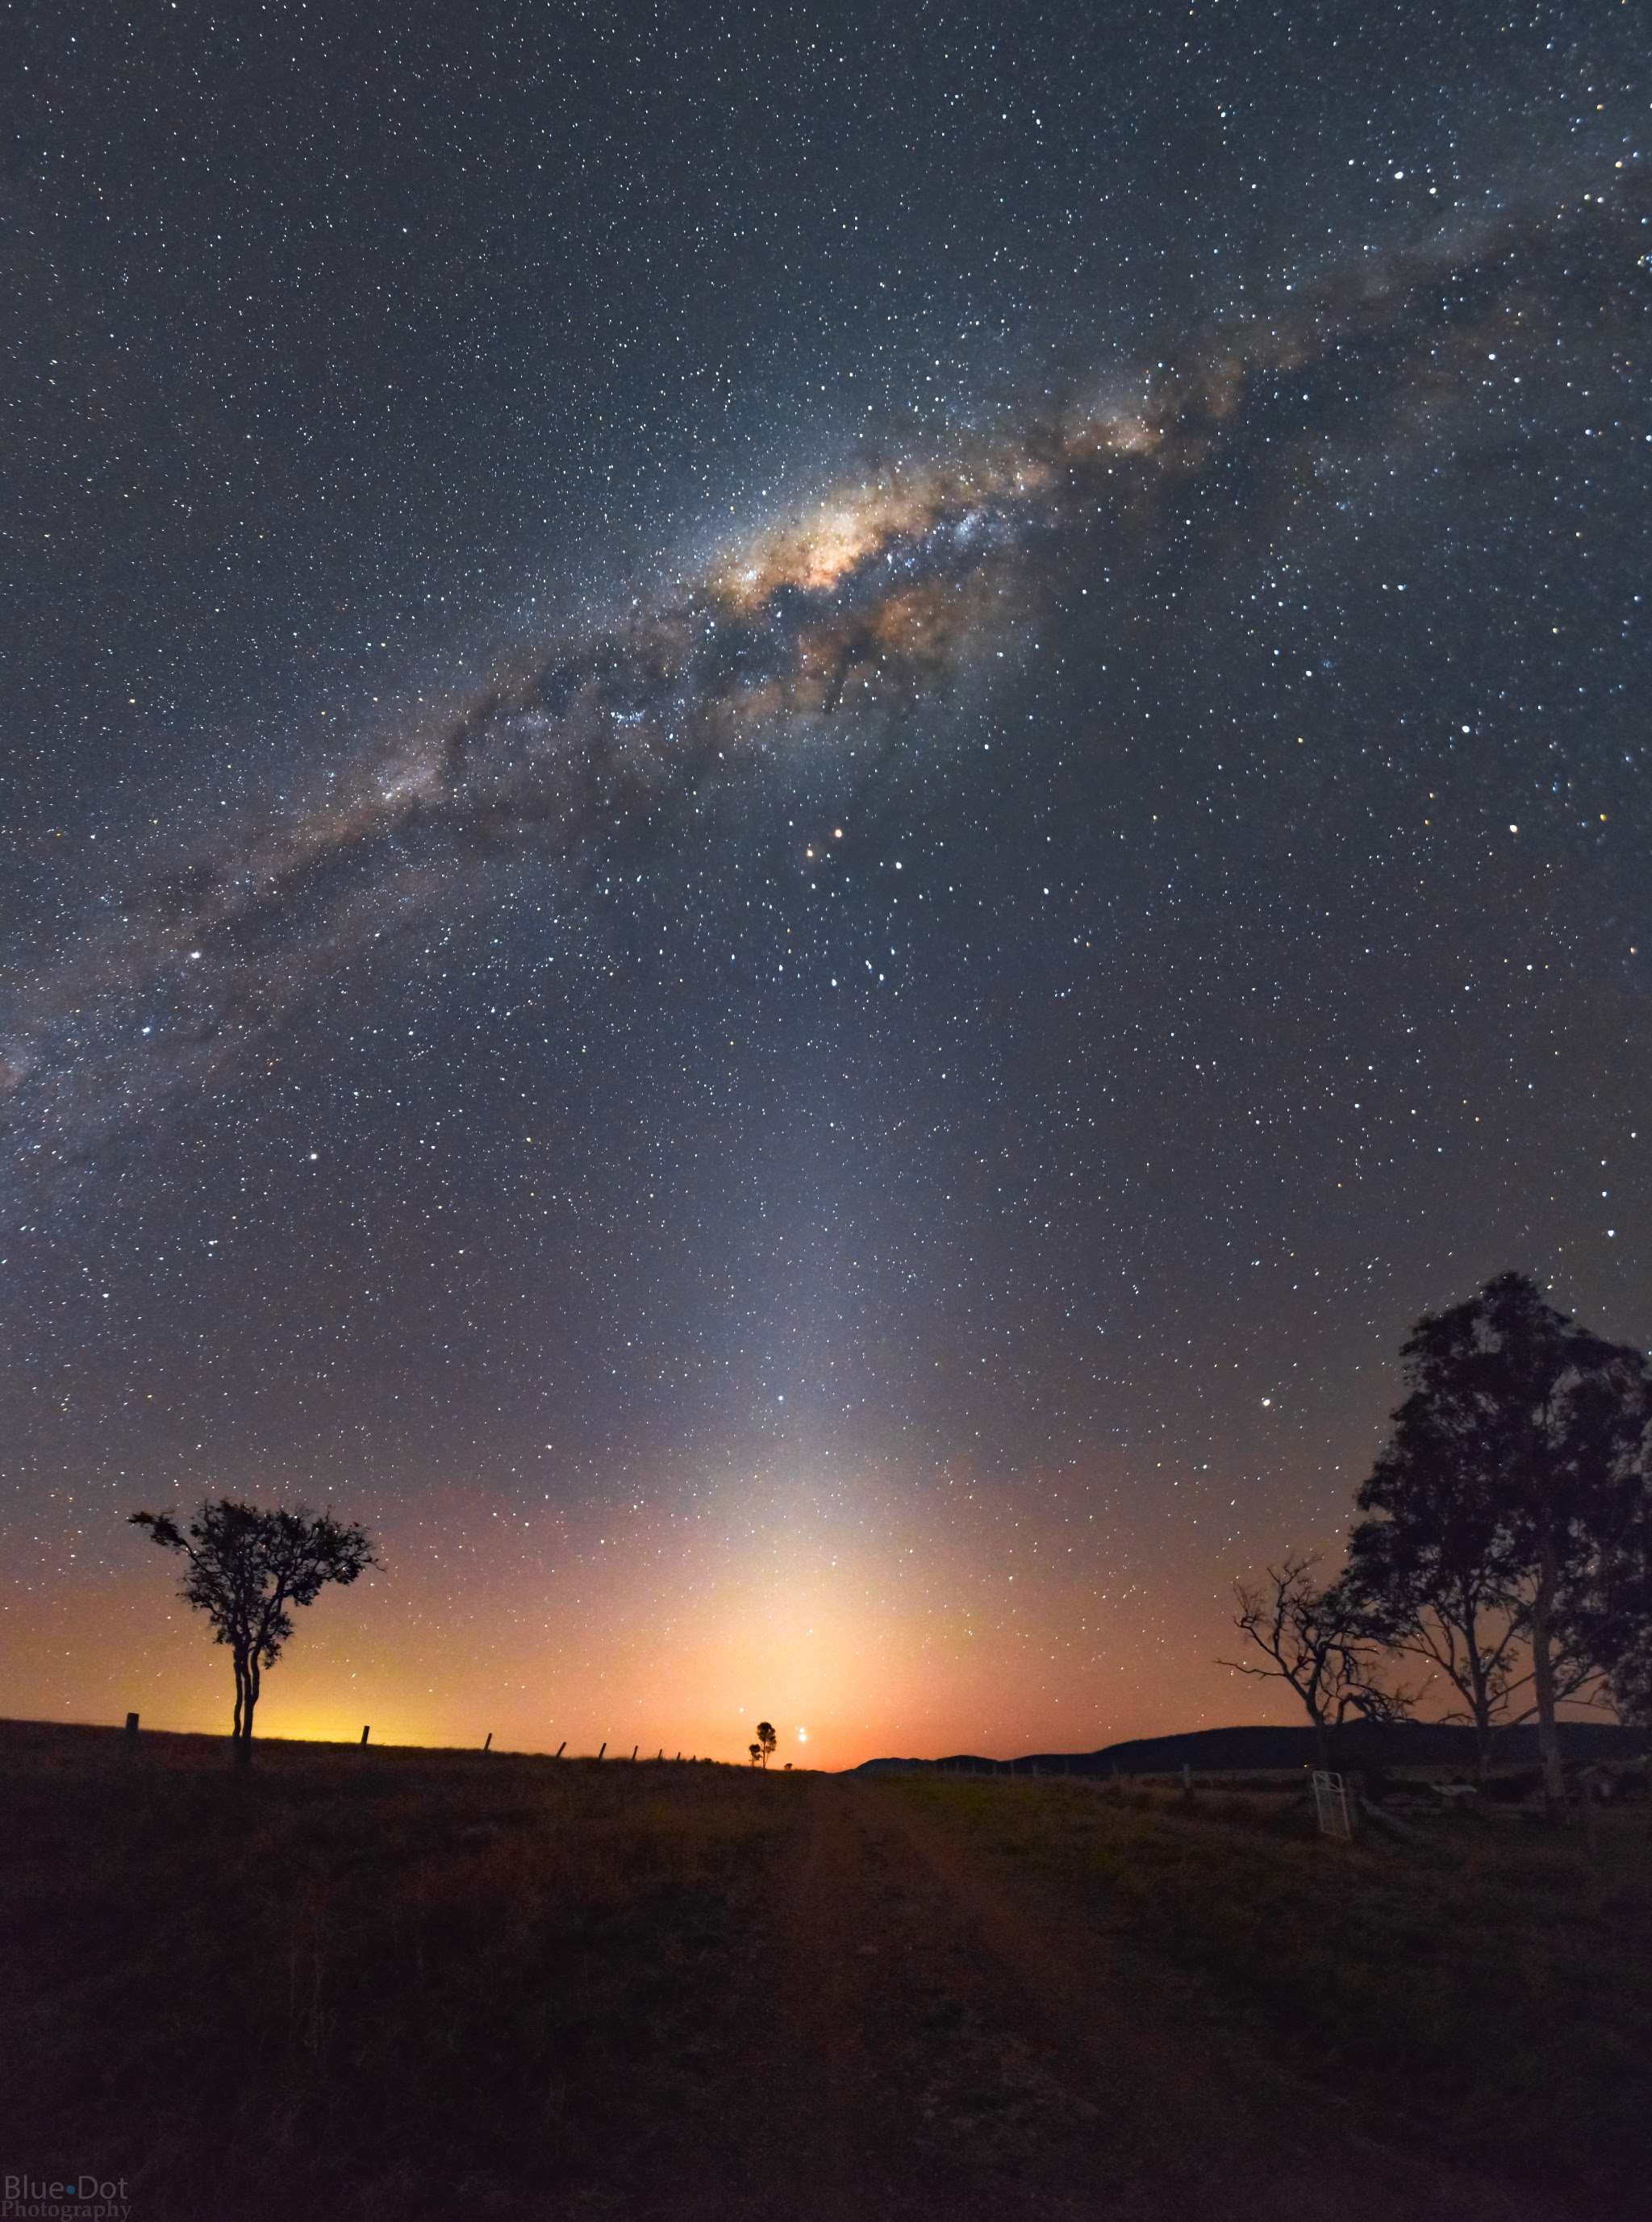 APOD: 2016 September 1 - Light at the End of the Road